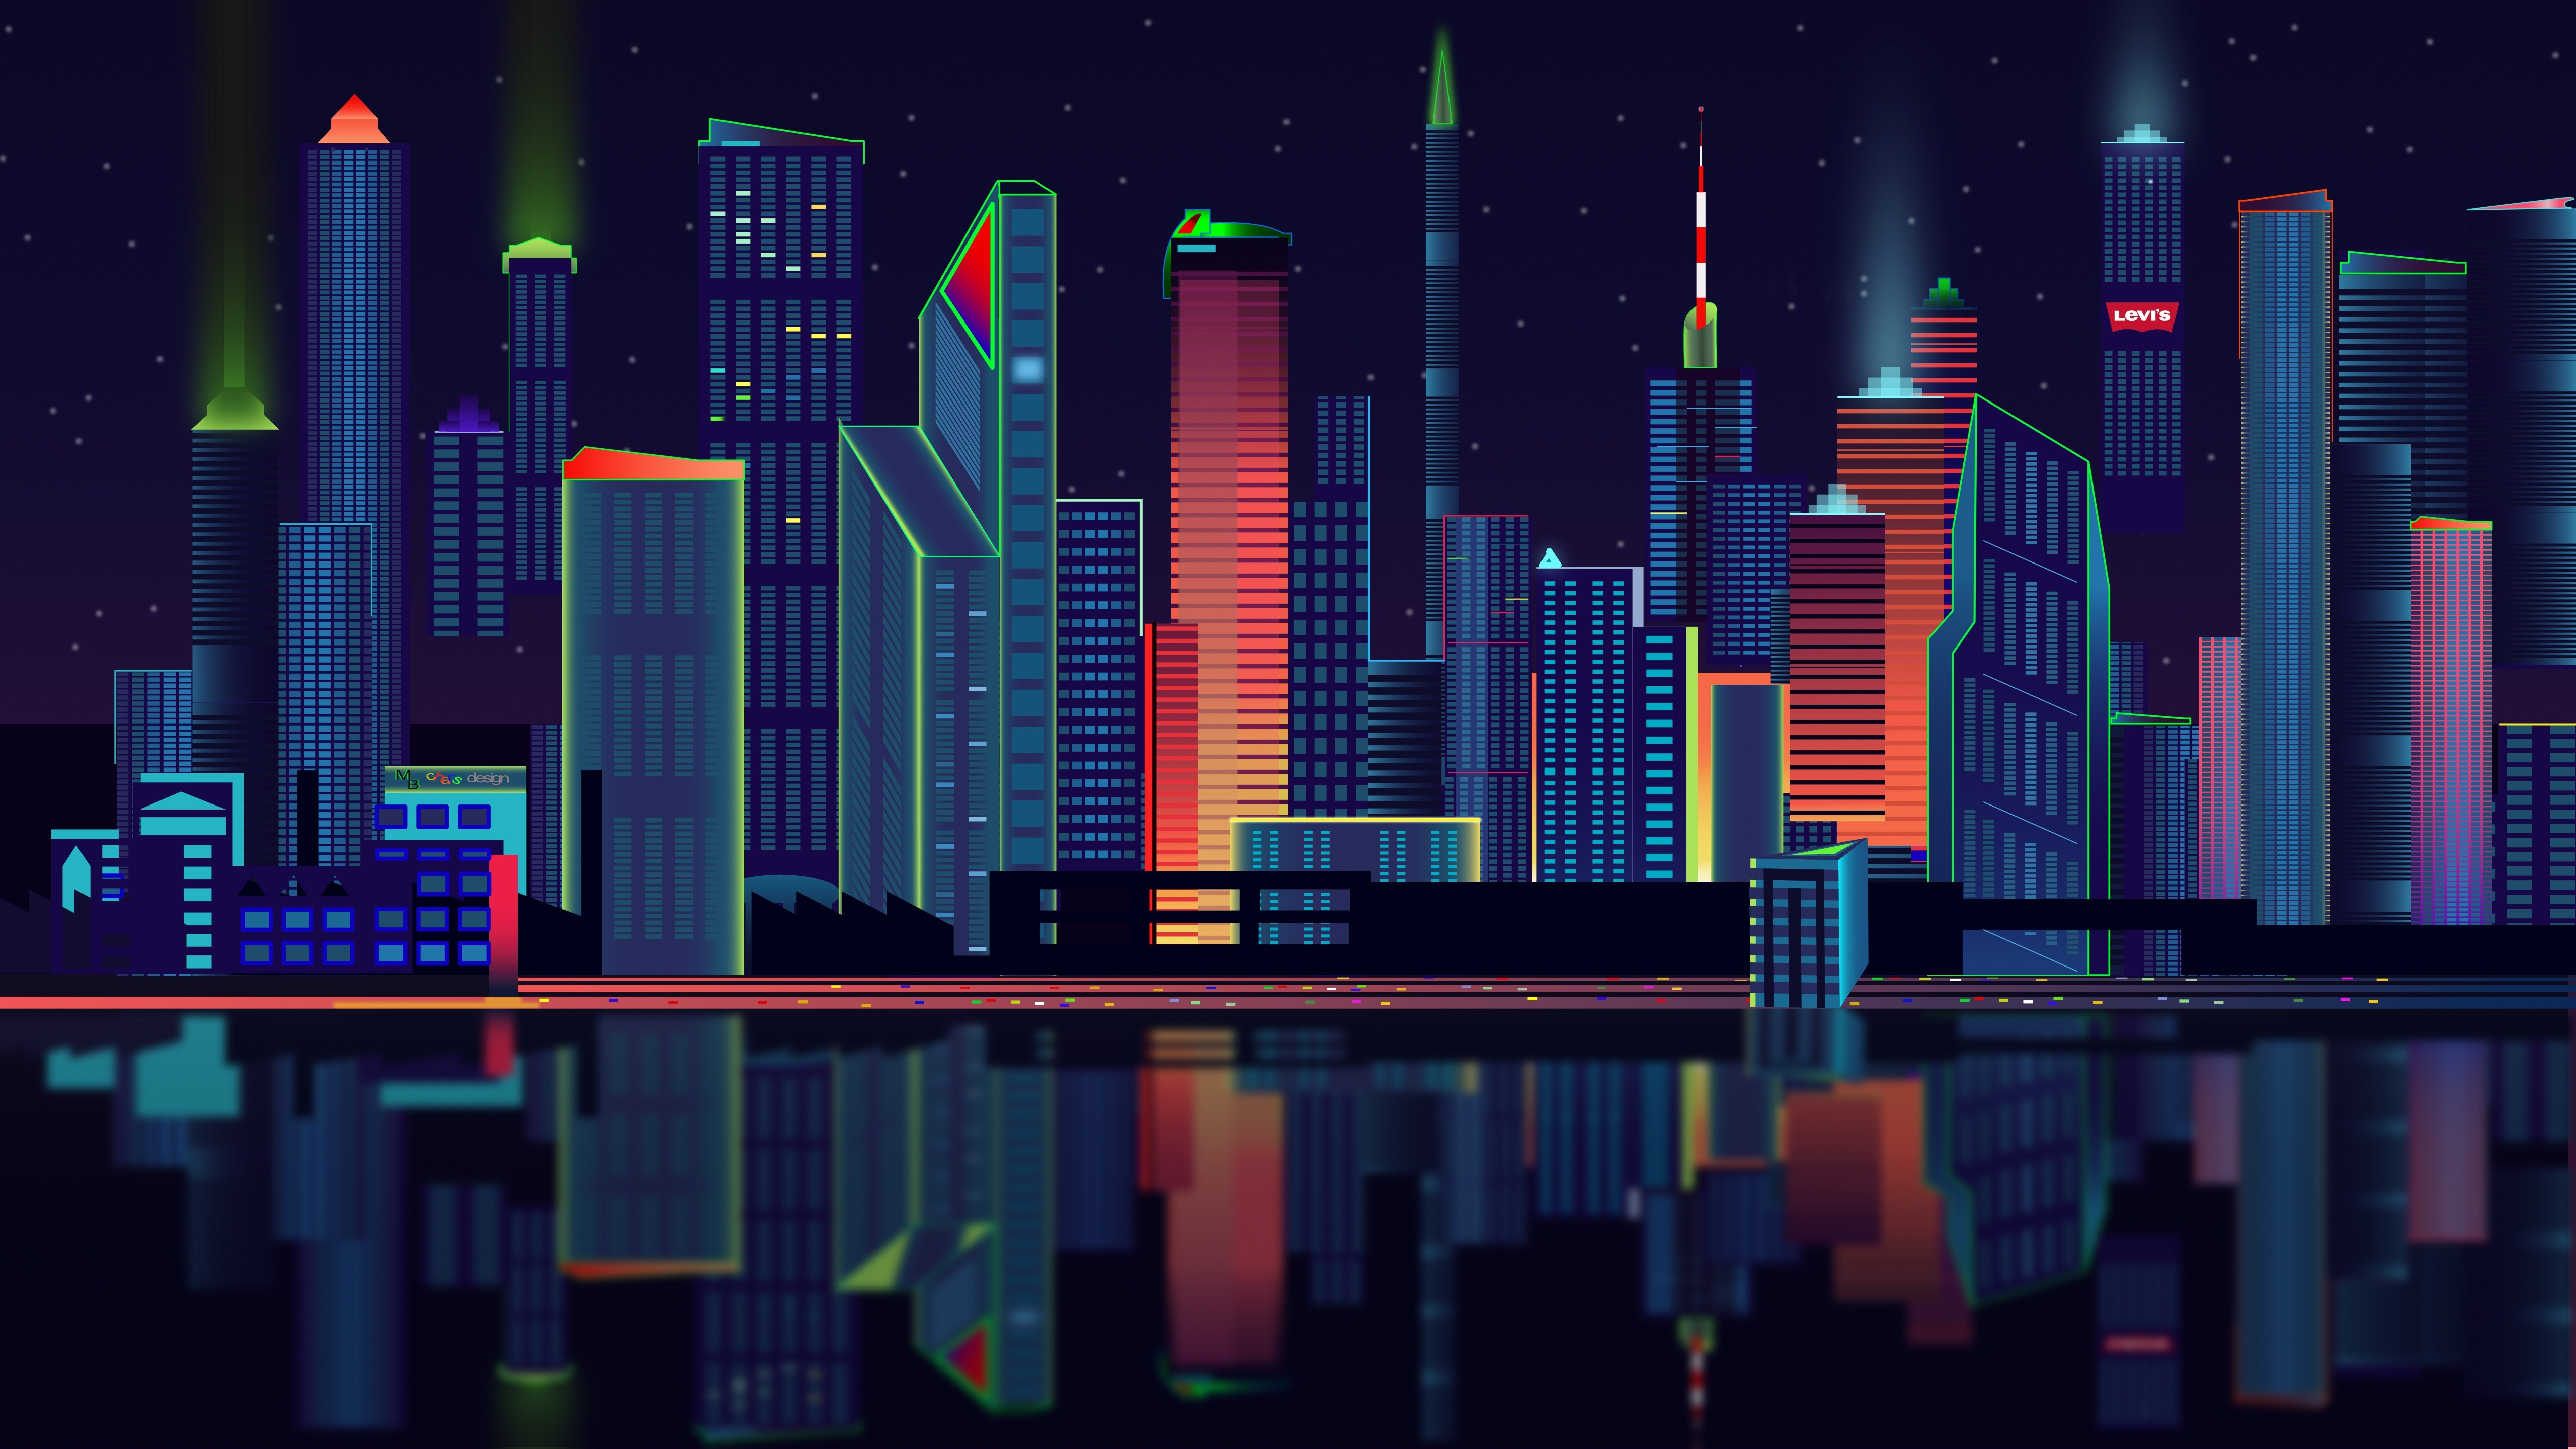 Download wallpapers 5120x2880 city, vector, panorama hd backgrounds